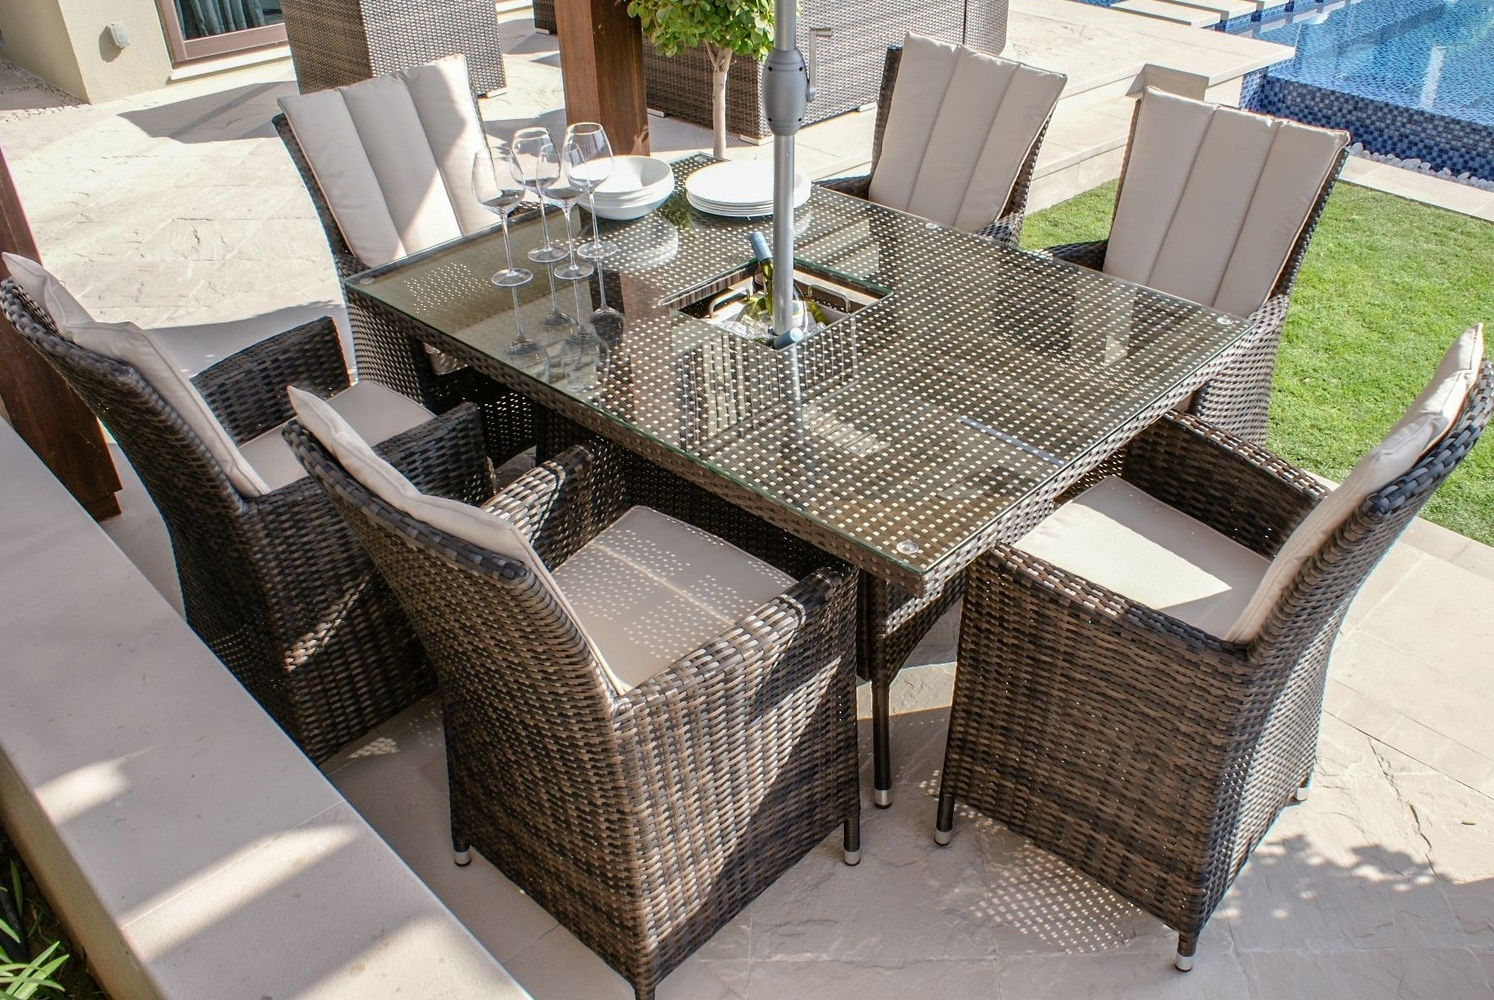 Widely Used Paris Dining Tables Inside Paris 6 Seater Rectangular Rattan Dining Set With Ice Bucket (View 25 of 25)